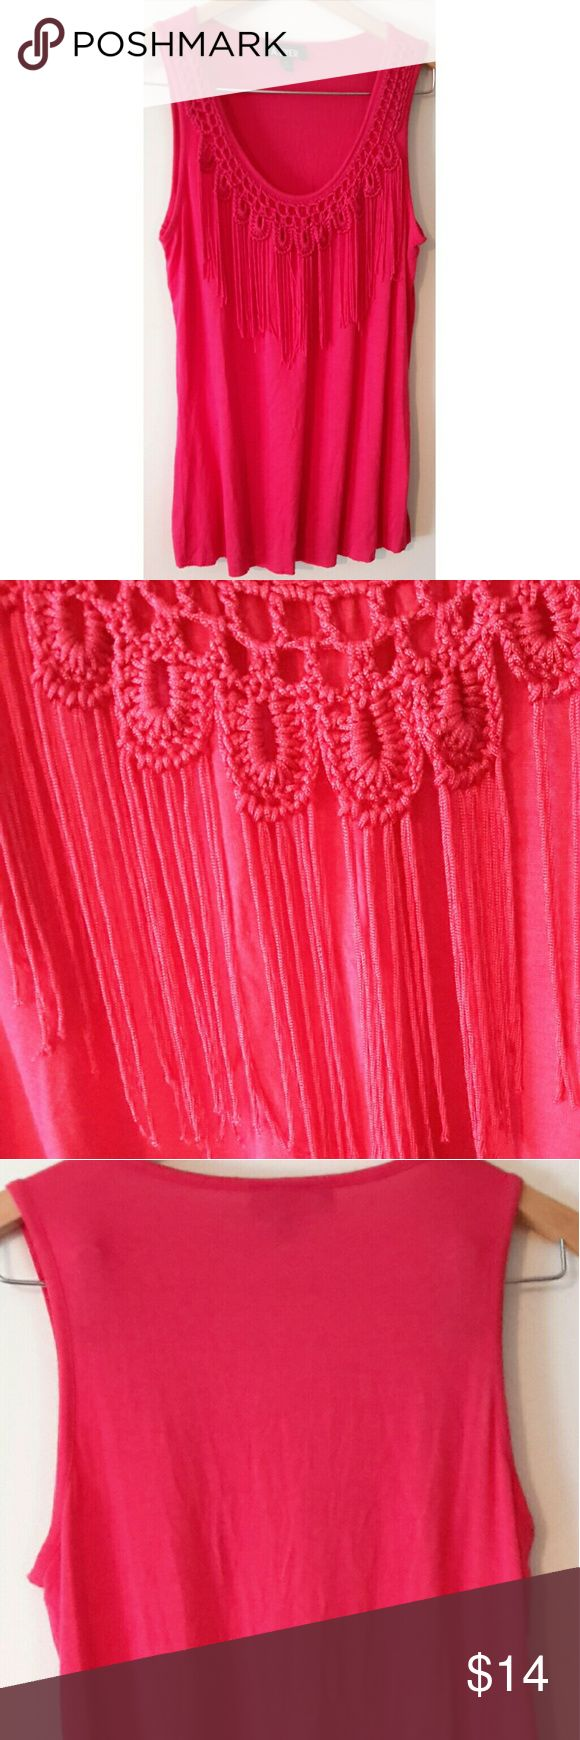 Gorgeous Pink Fringe Top Gorgeous fringe top! Size is medium. A. Byer Tops